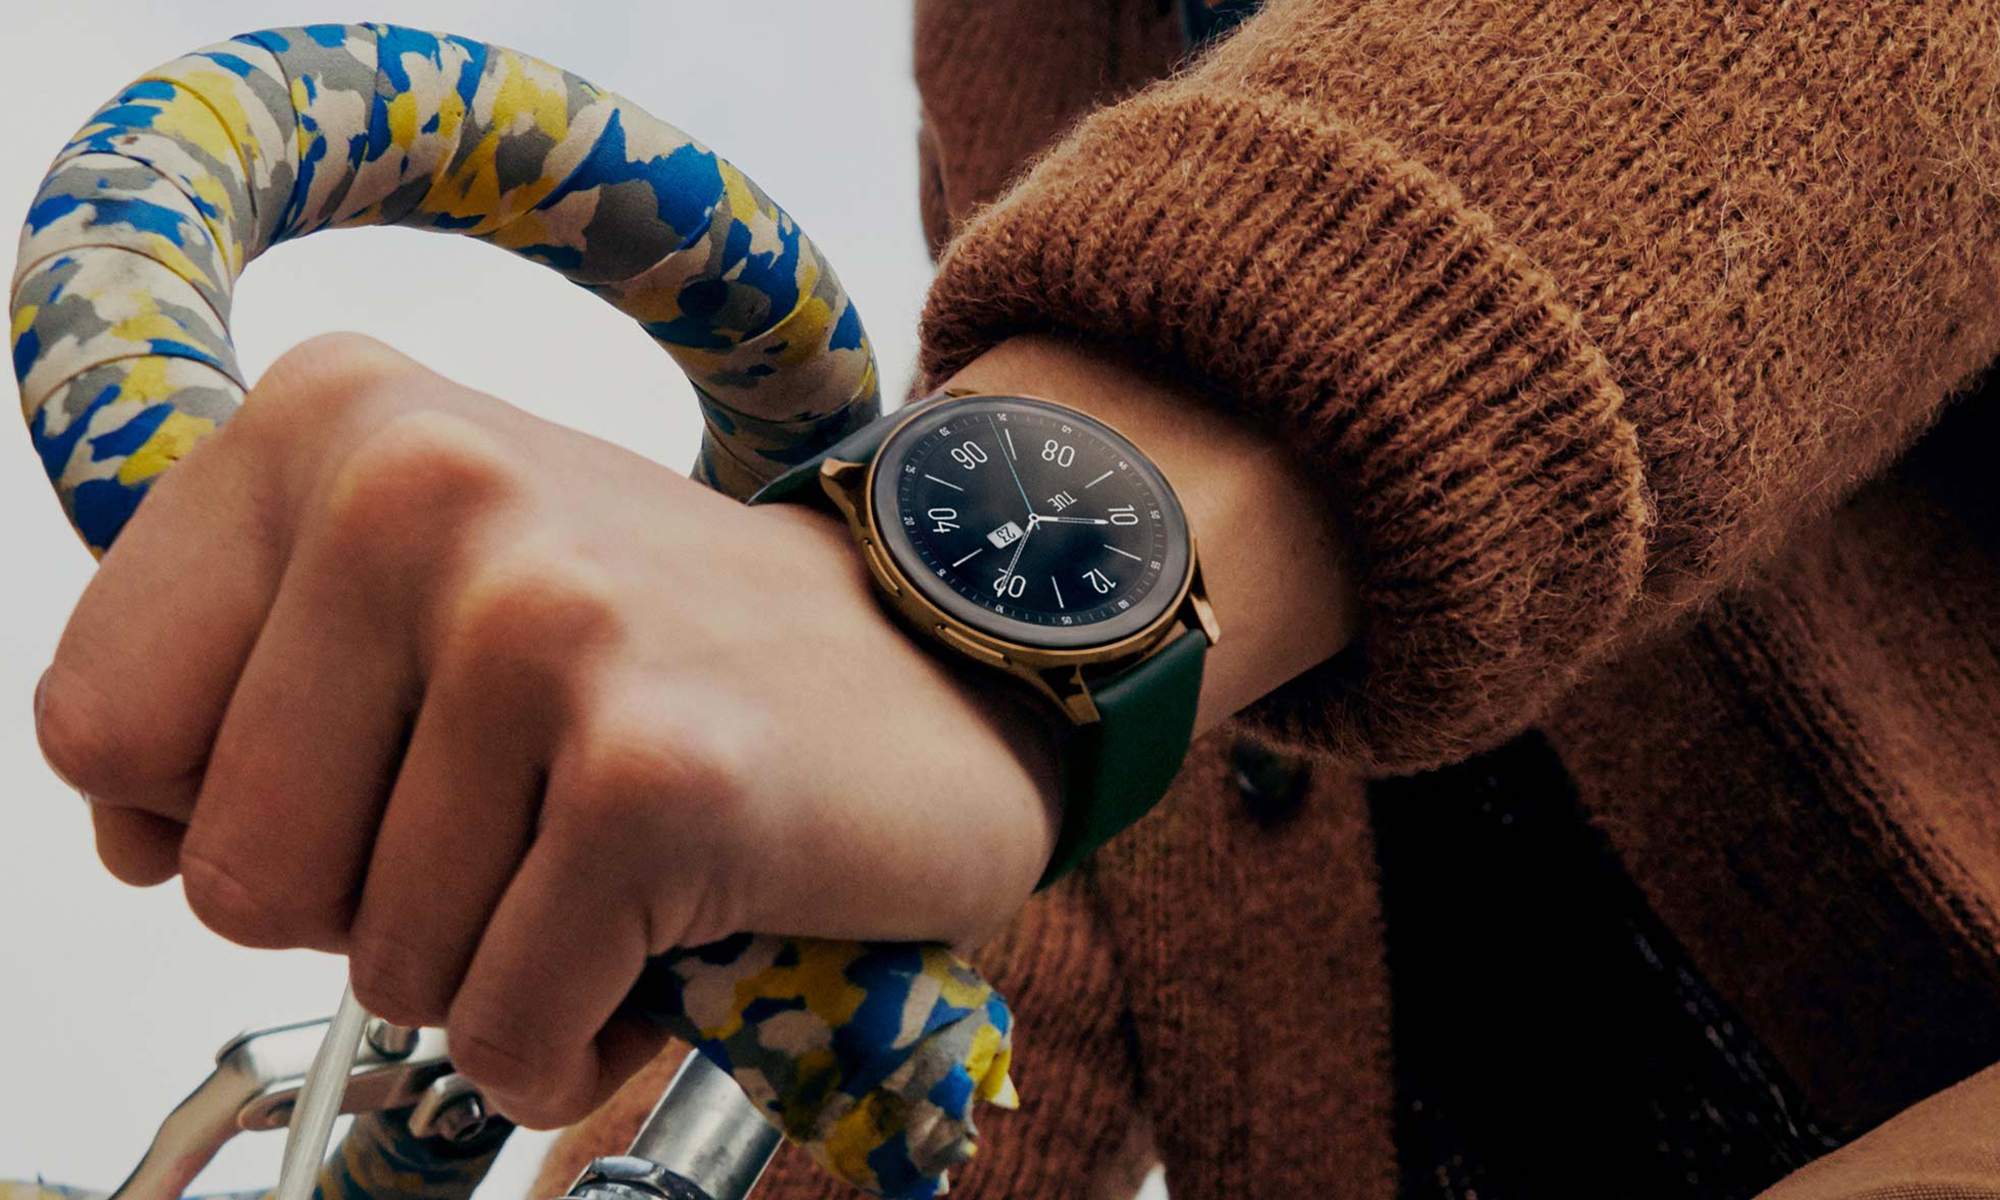 <p>Various press images showing people wearing the OnePlus Watch.</p>